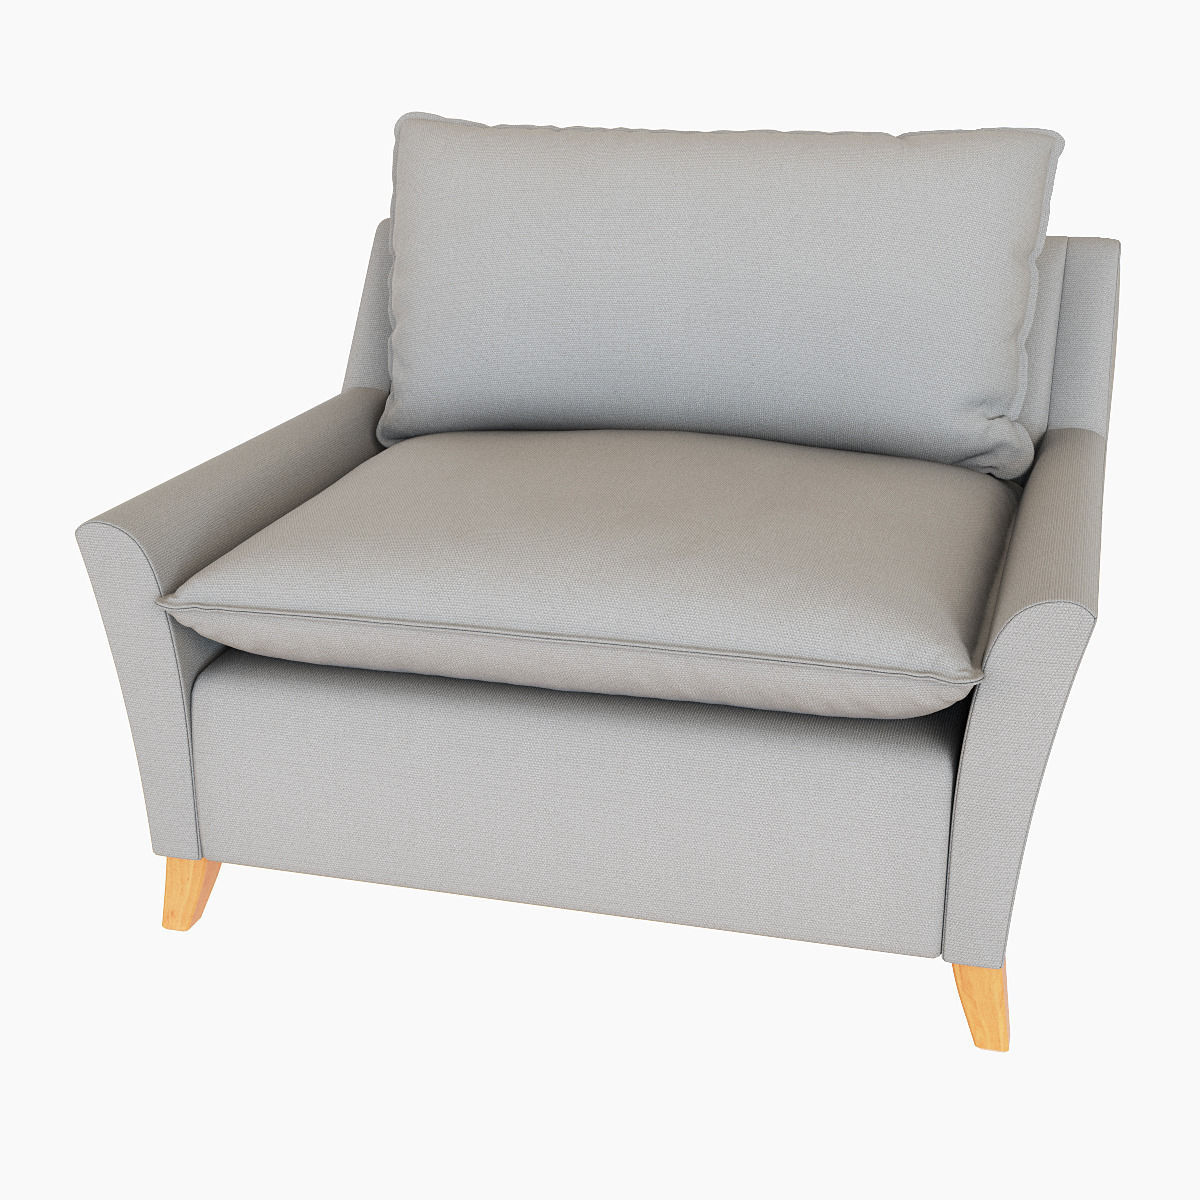 ... West Elm Bliss Down Filled Chair And A Half 3d Model Max ...